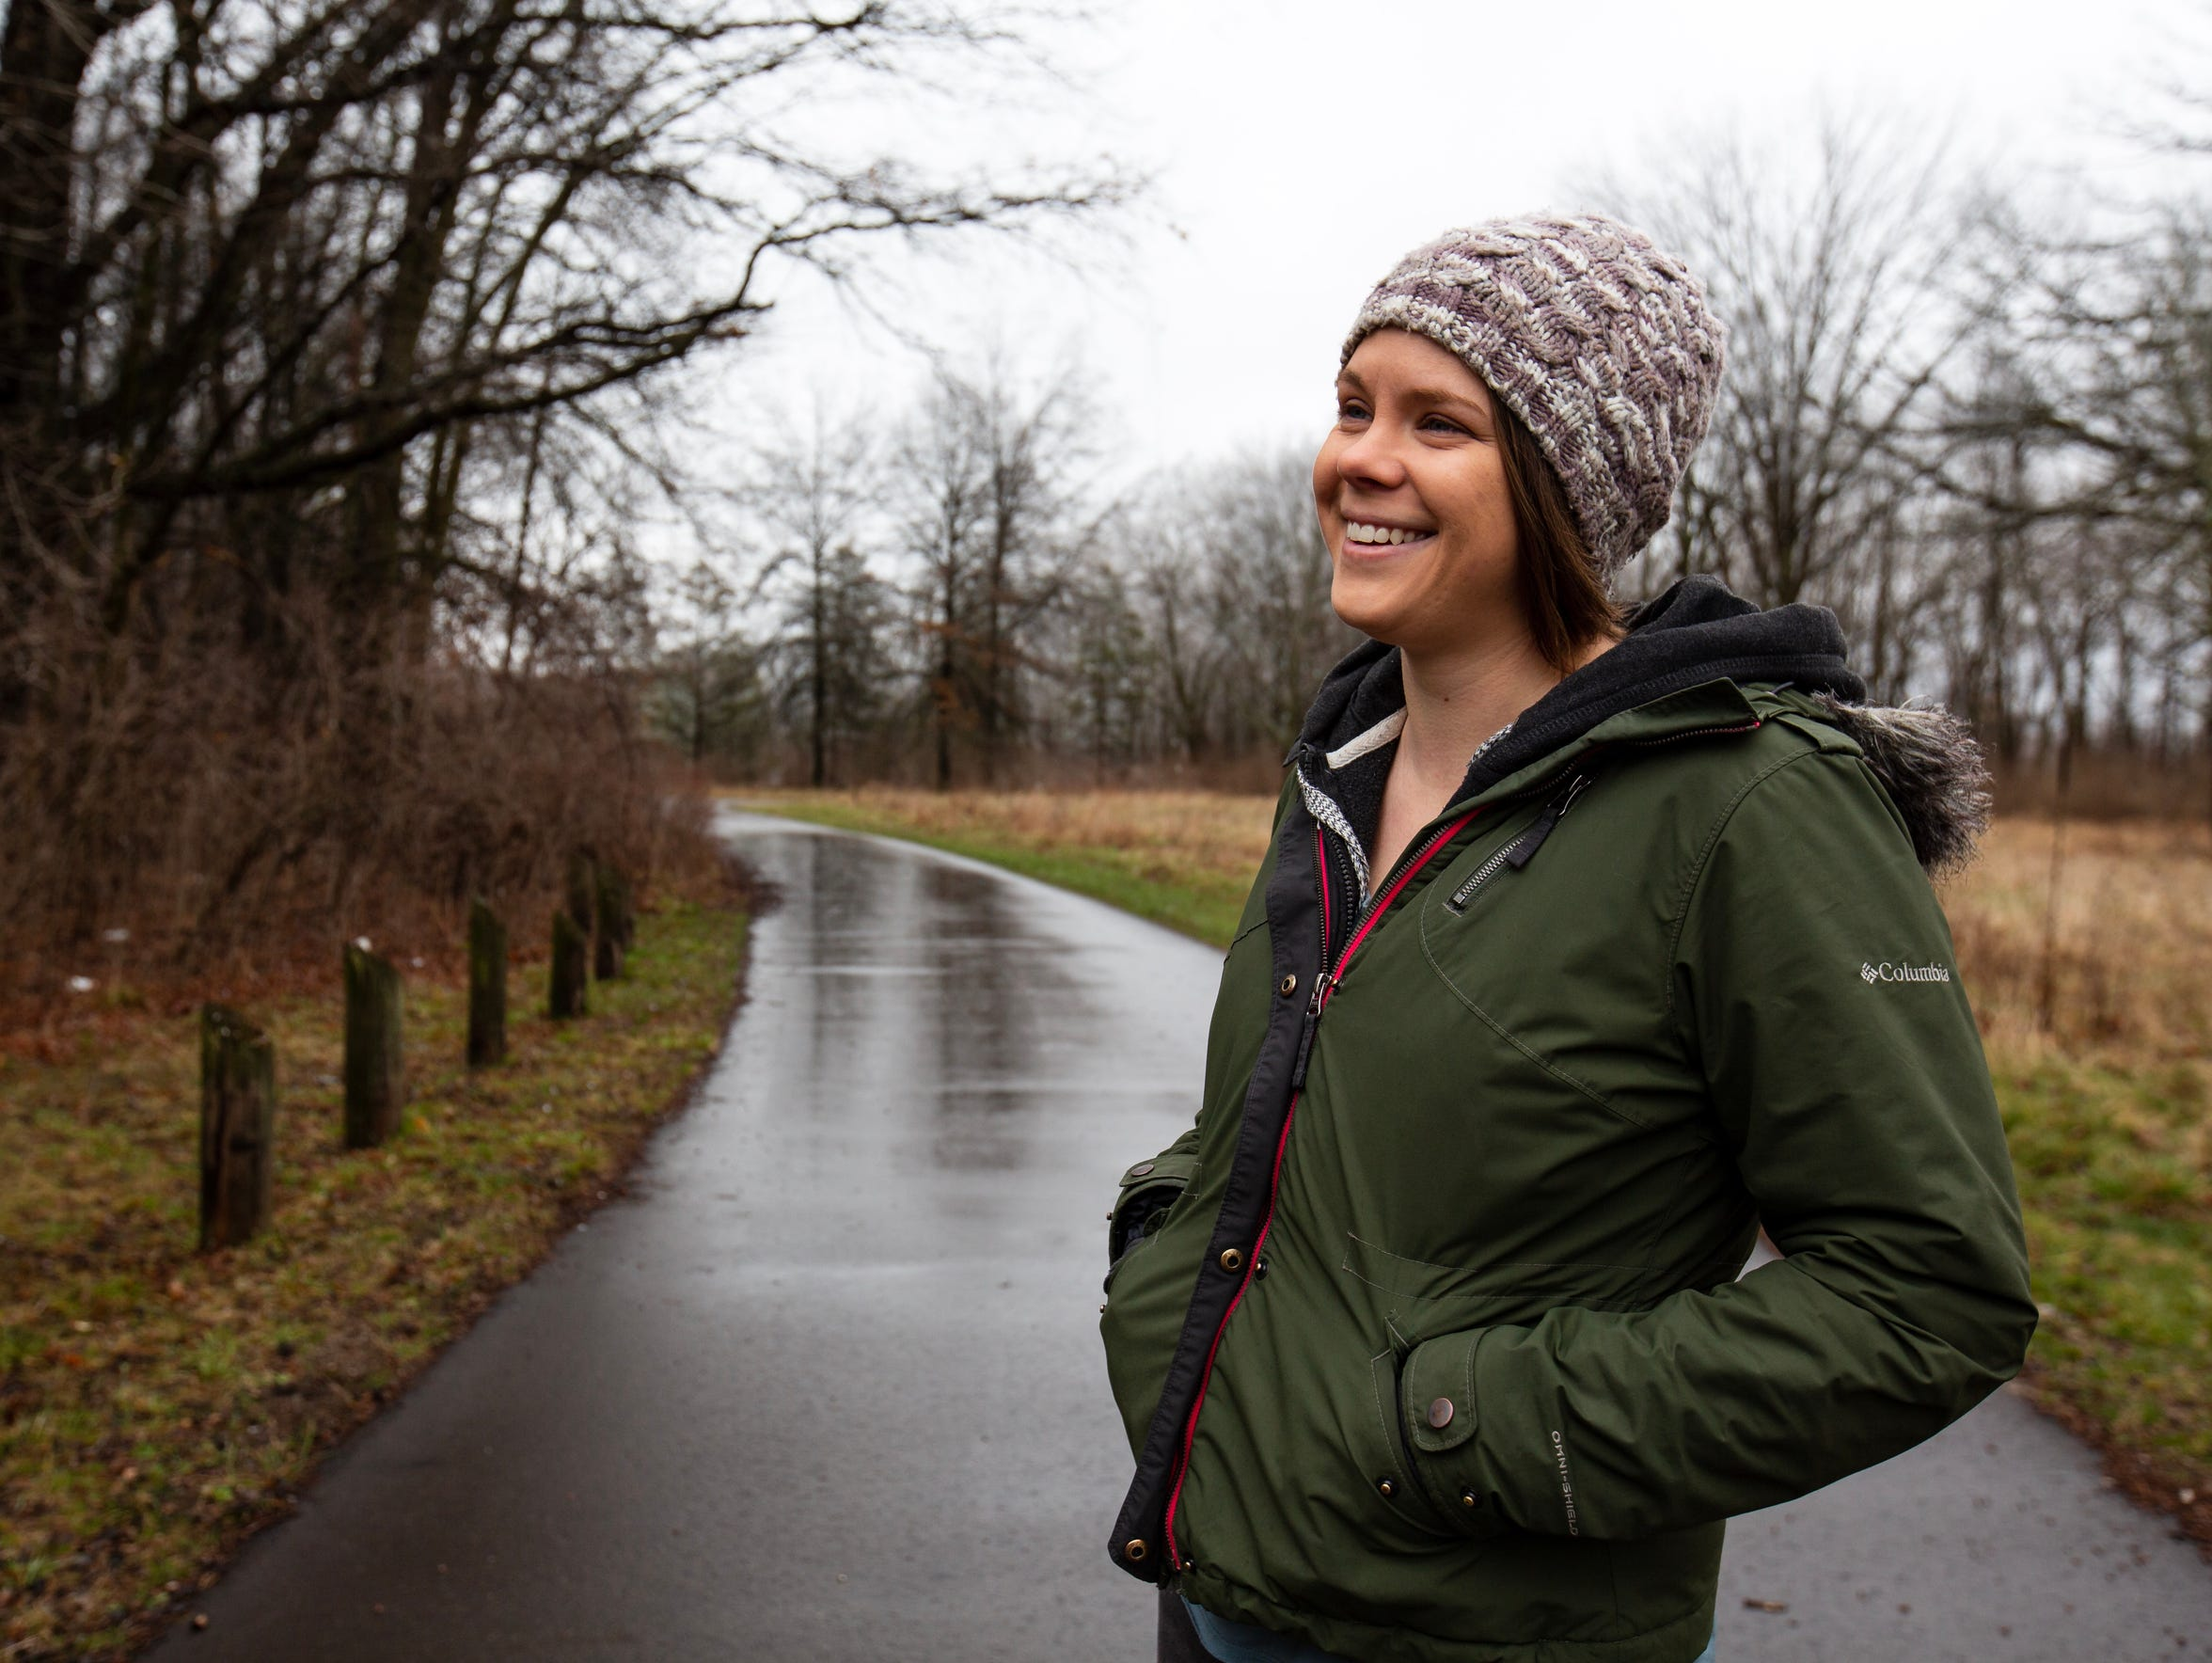 Holt native and trail ambassador for the Friends of